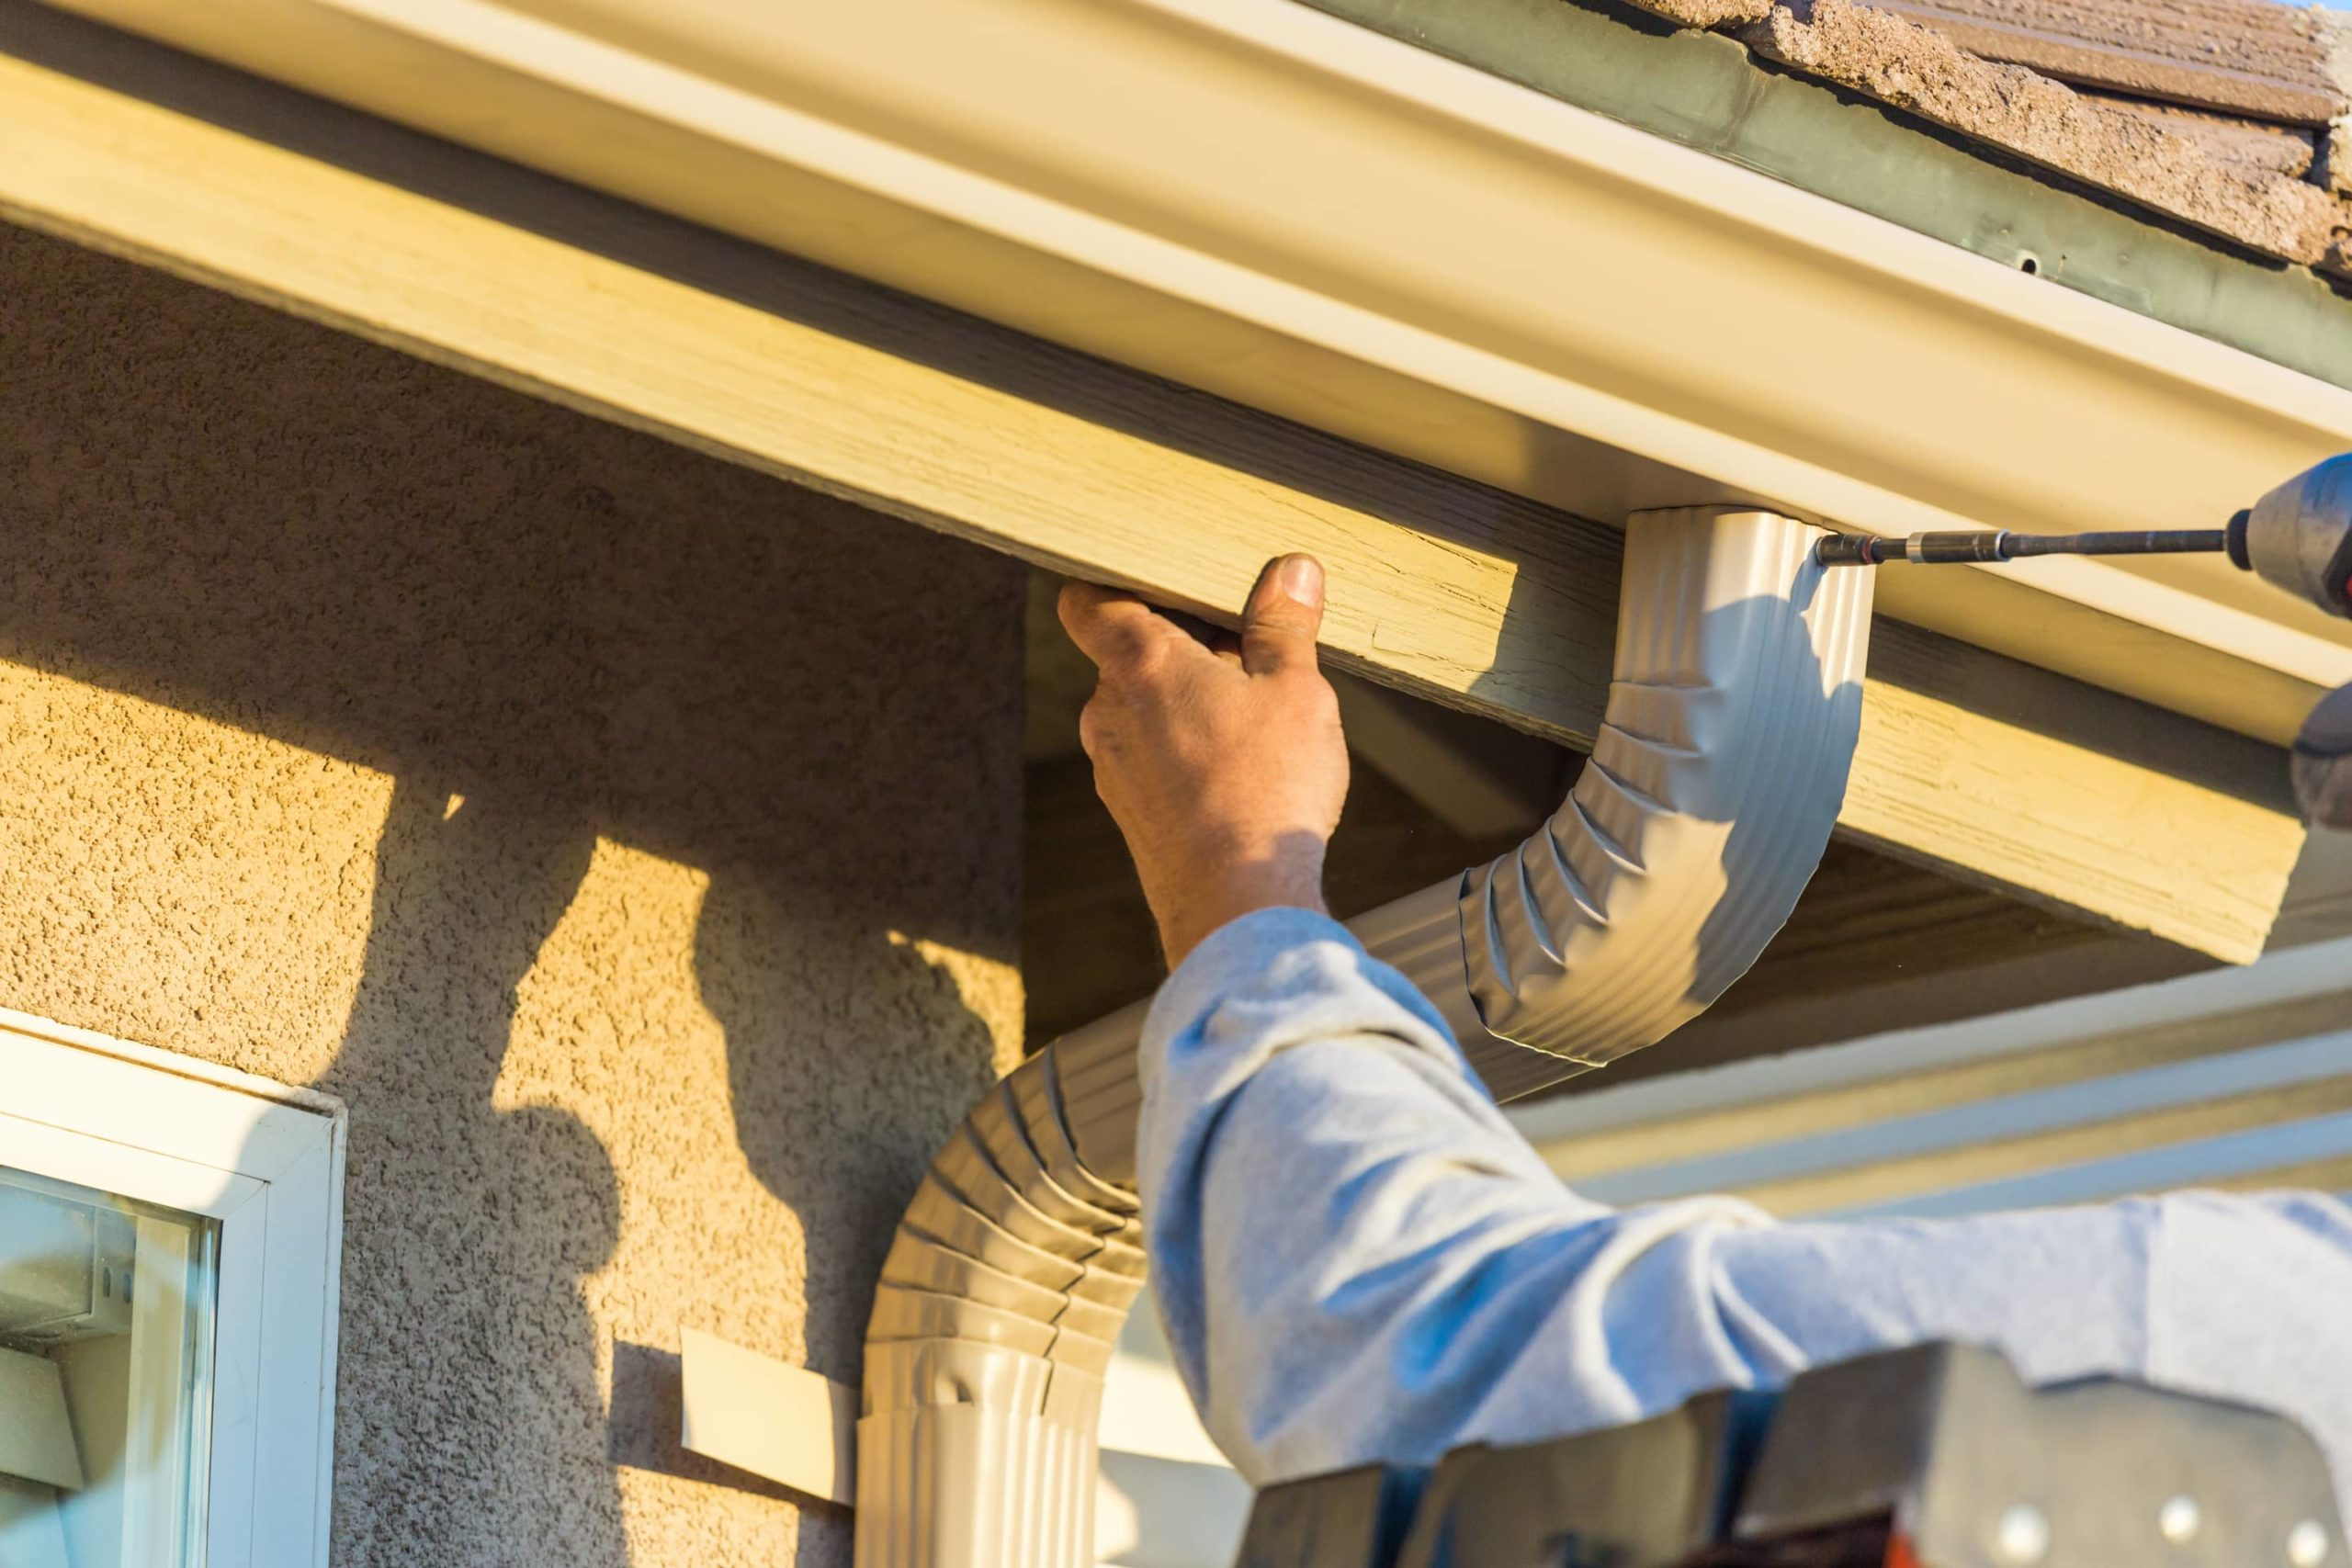 This is an image of a gutter installation service by a professional roofing contractor.